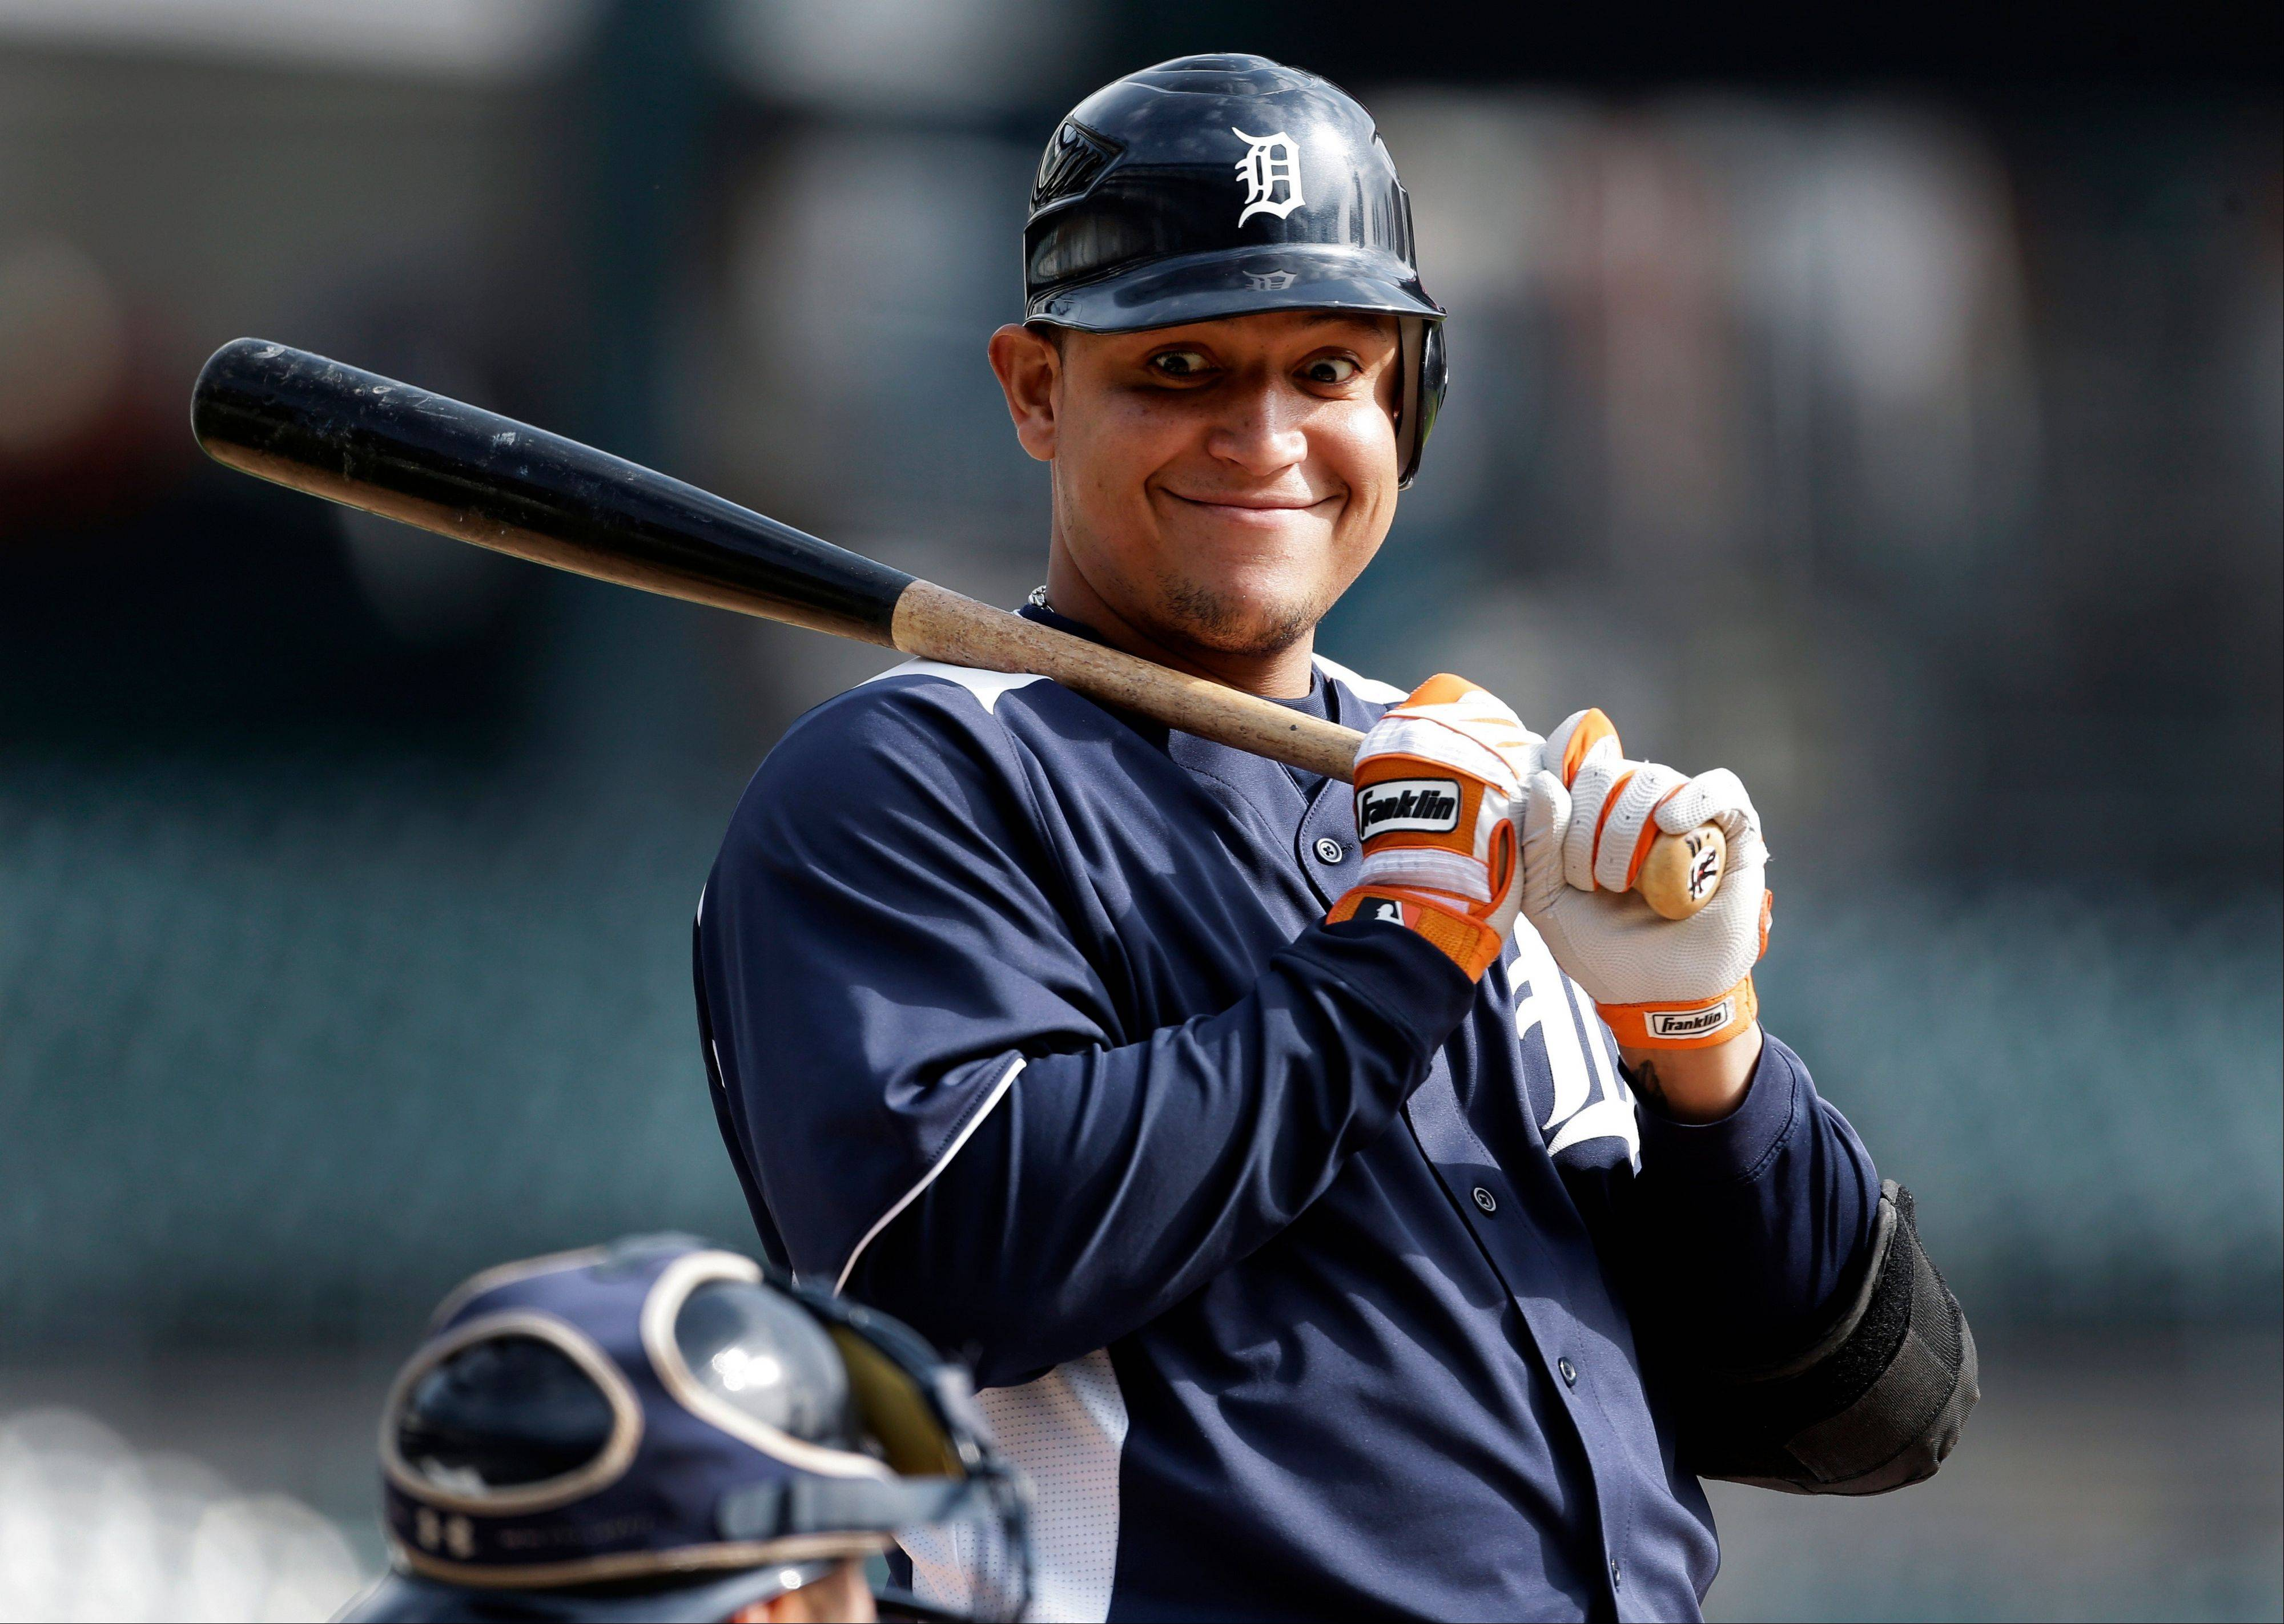 The Tigers' Miguel Cabrera smiles at catcher Gerald Laird after a pitch during a workout Monday at Comerica Park. Cabrera will be the first Triple Crown winner to play in the World Series since Carl Yastrzemski and Boston lost in 1967.